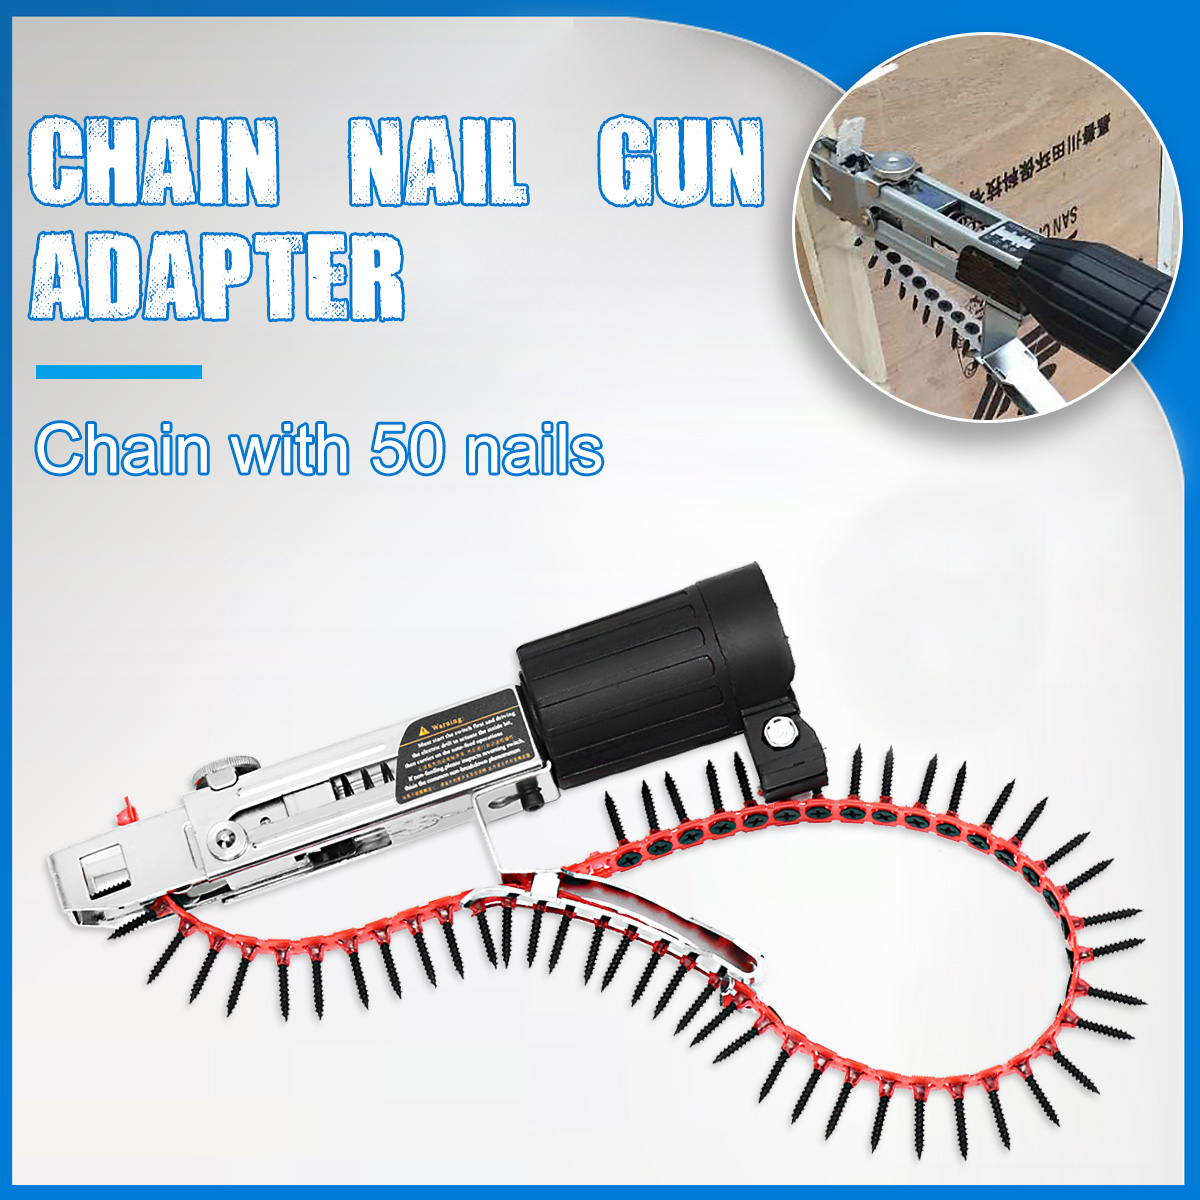 Drillpro Automatic Chain Nail Gun Adapter Screw Gun for Electric Drill Woodworking Tool Cordless Power Drill Attachment